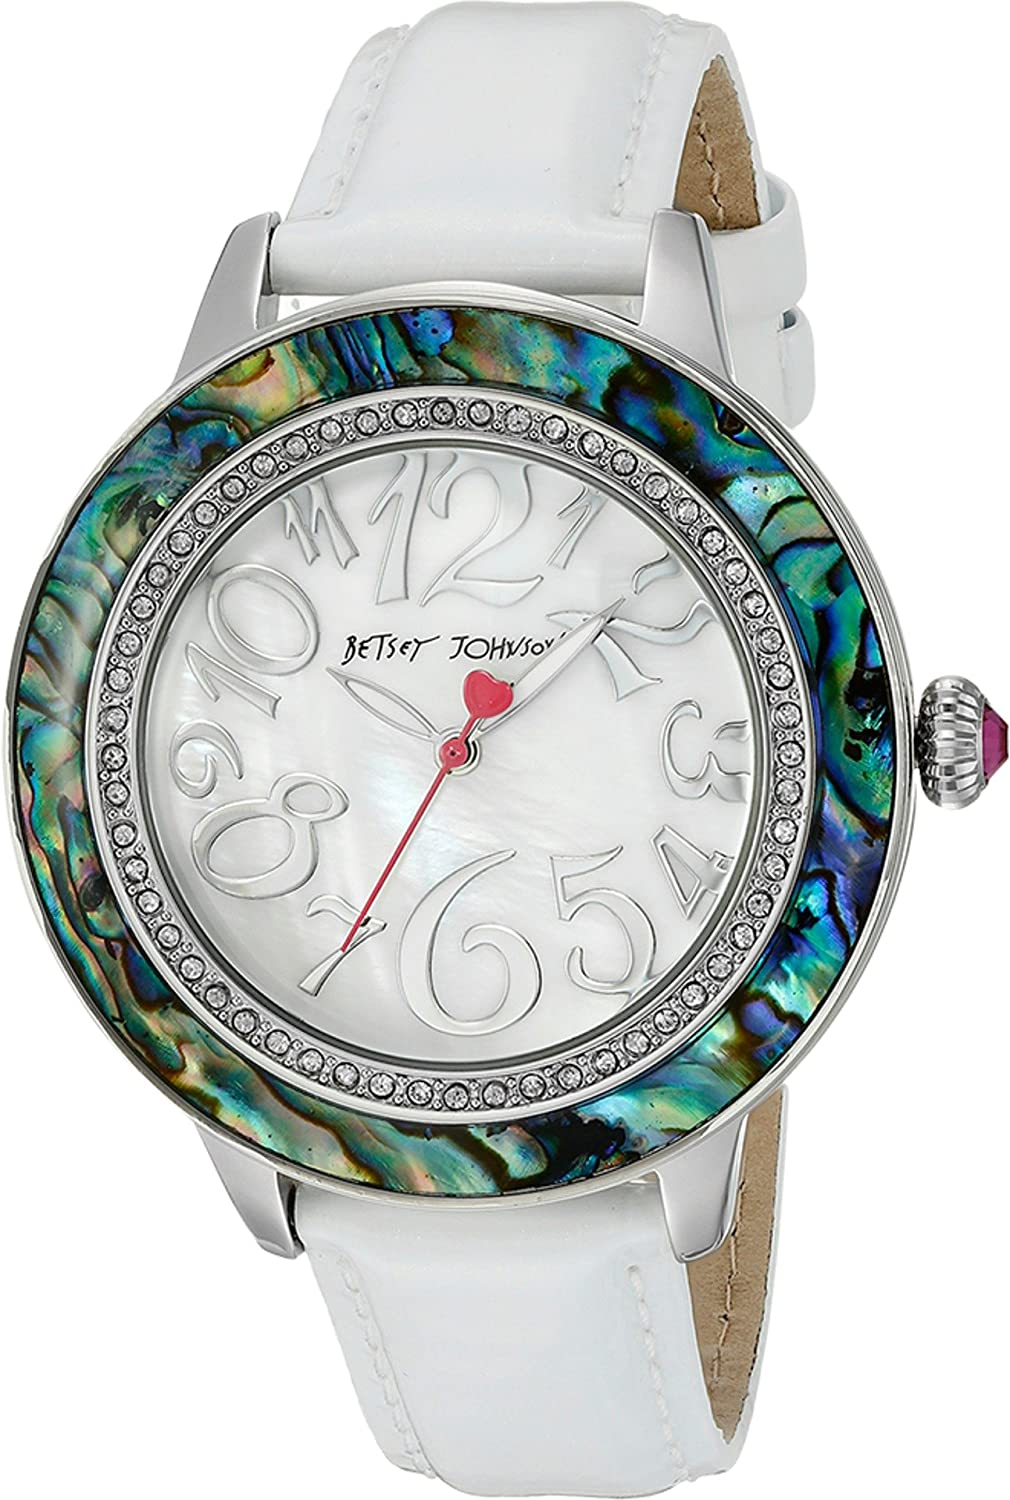 Betsey Johnson Women's BJ00576-01 - White Strap Abalone White/Abalone Watch